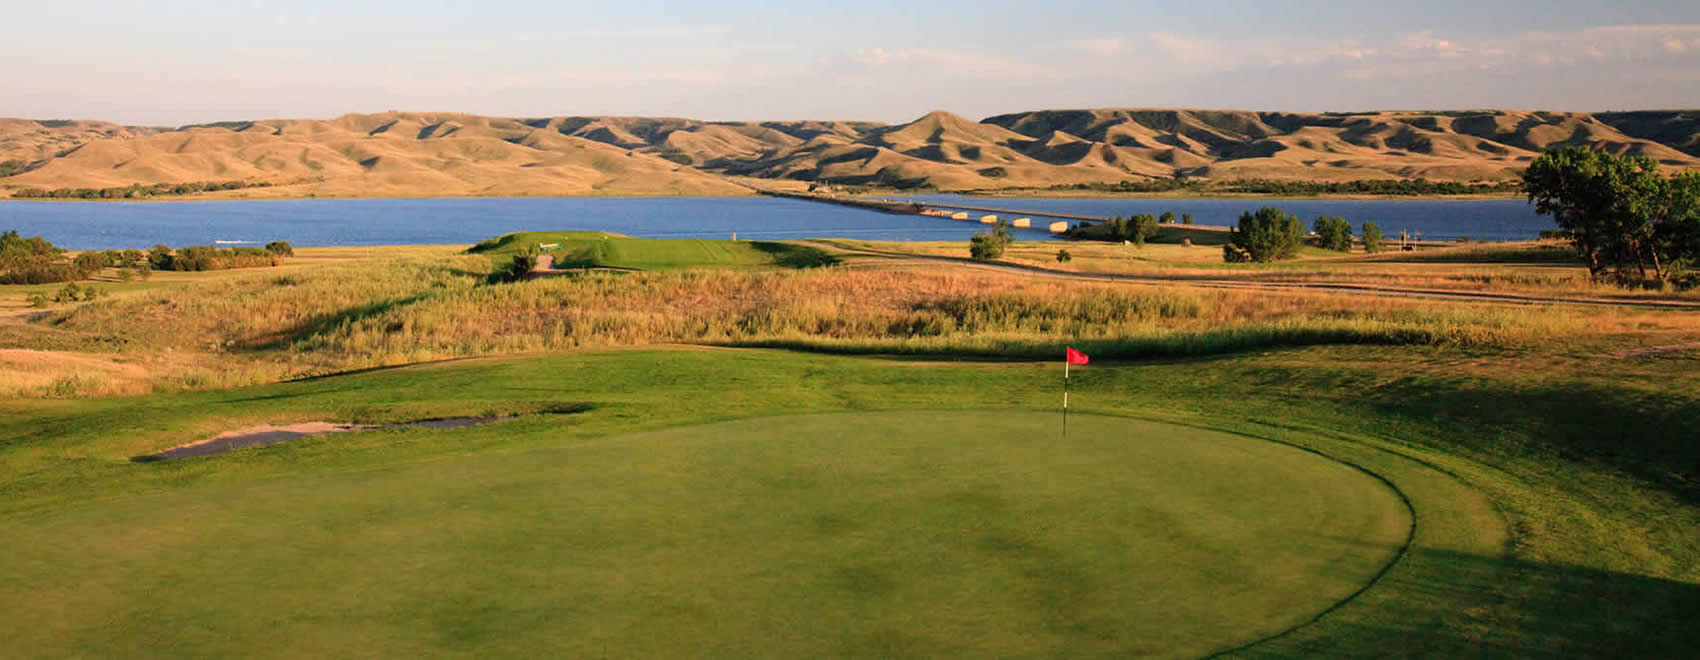 Saskatchewan Landing Golf Resort